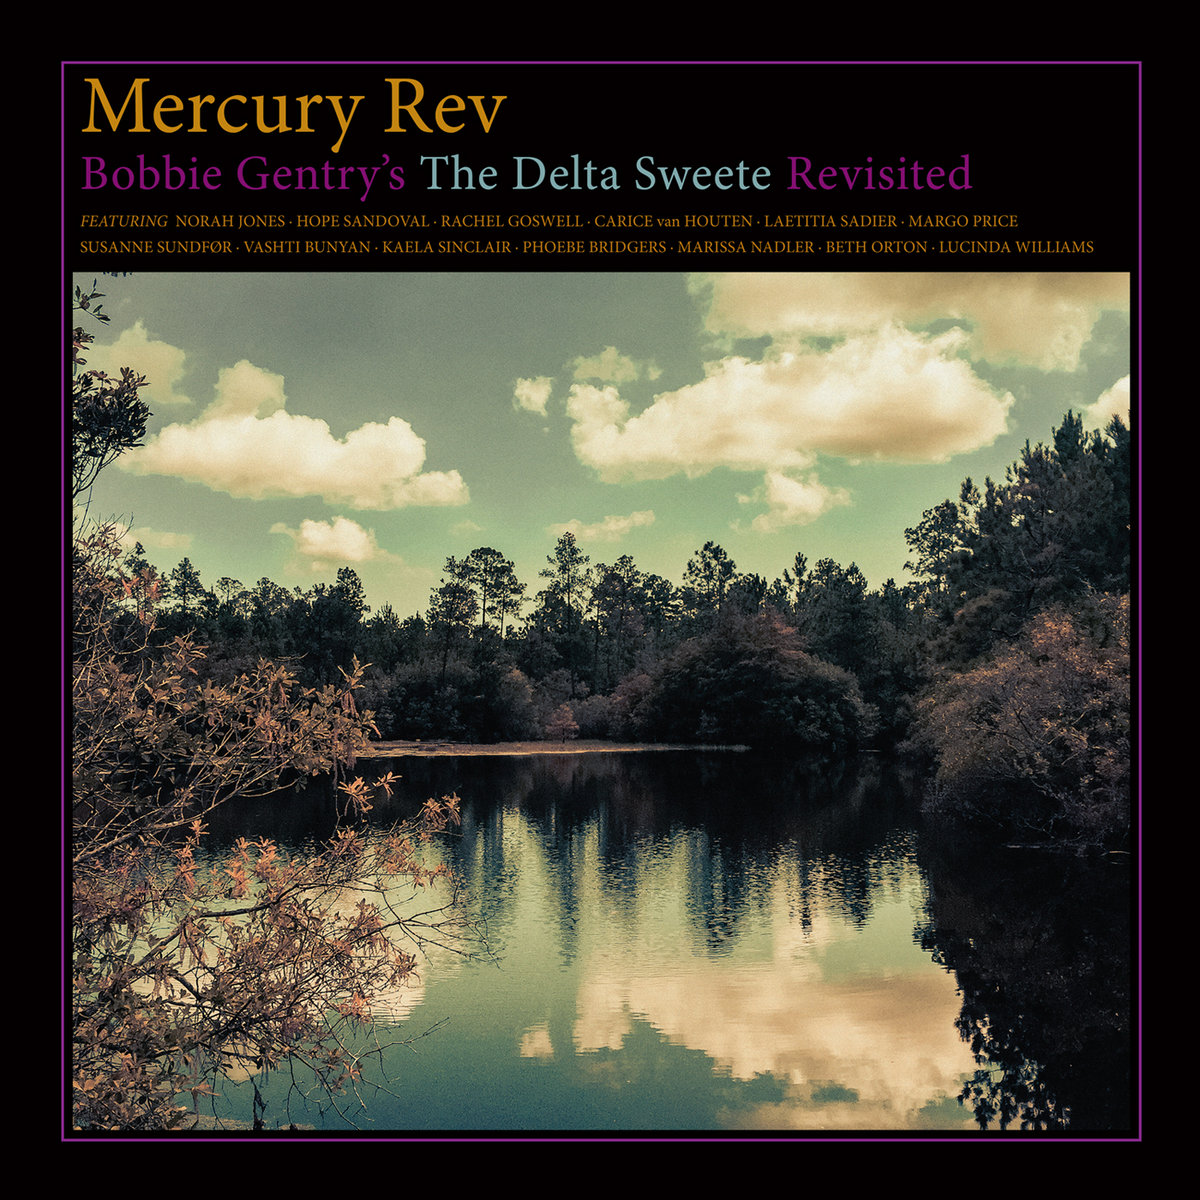 MERCURY REV - BOBBIE GENTRY'S THE DELTA BLUES REVISITED